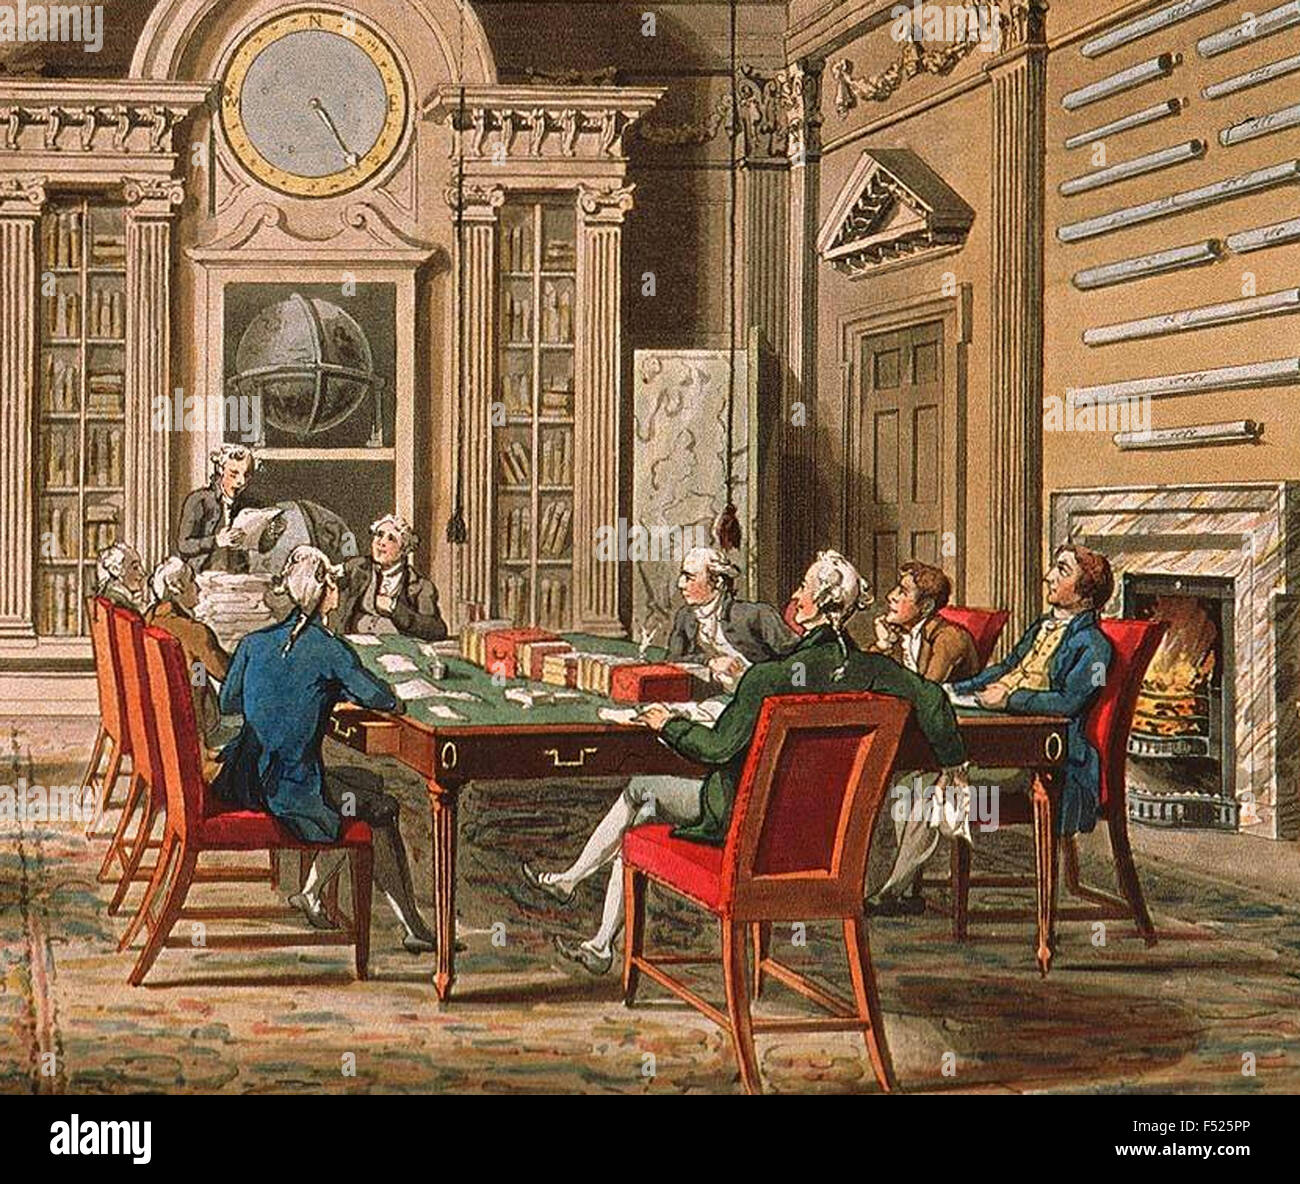 BOARD OF ADMIRALTY, London, from The Microcosm of London, 1808 - Stock Image